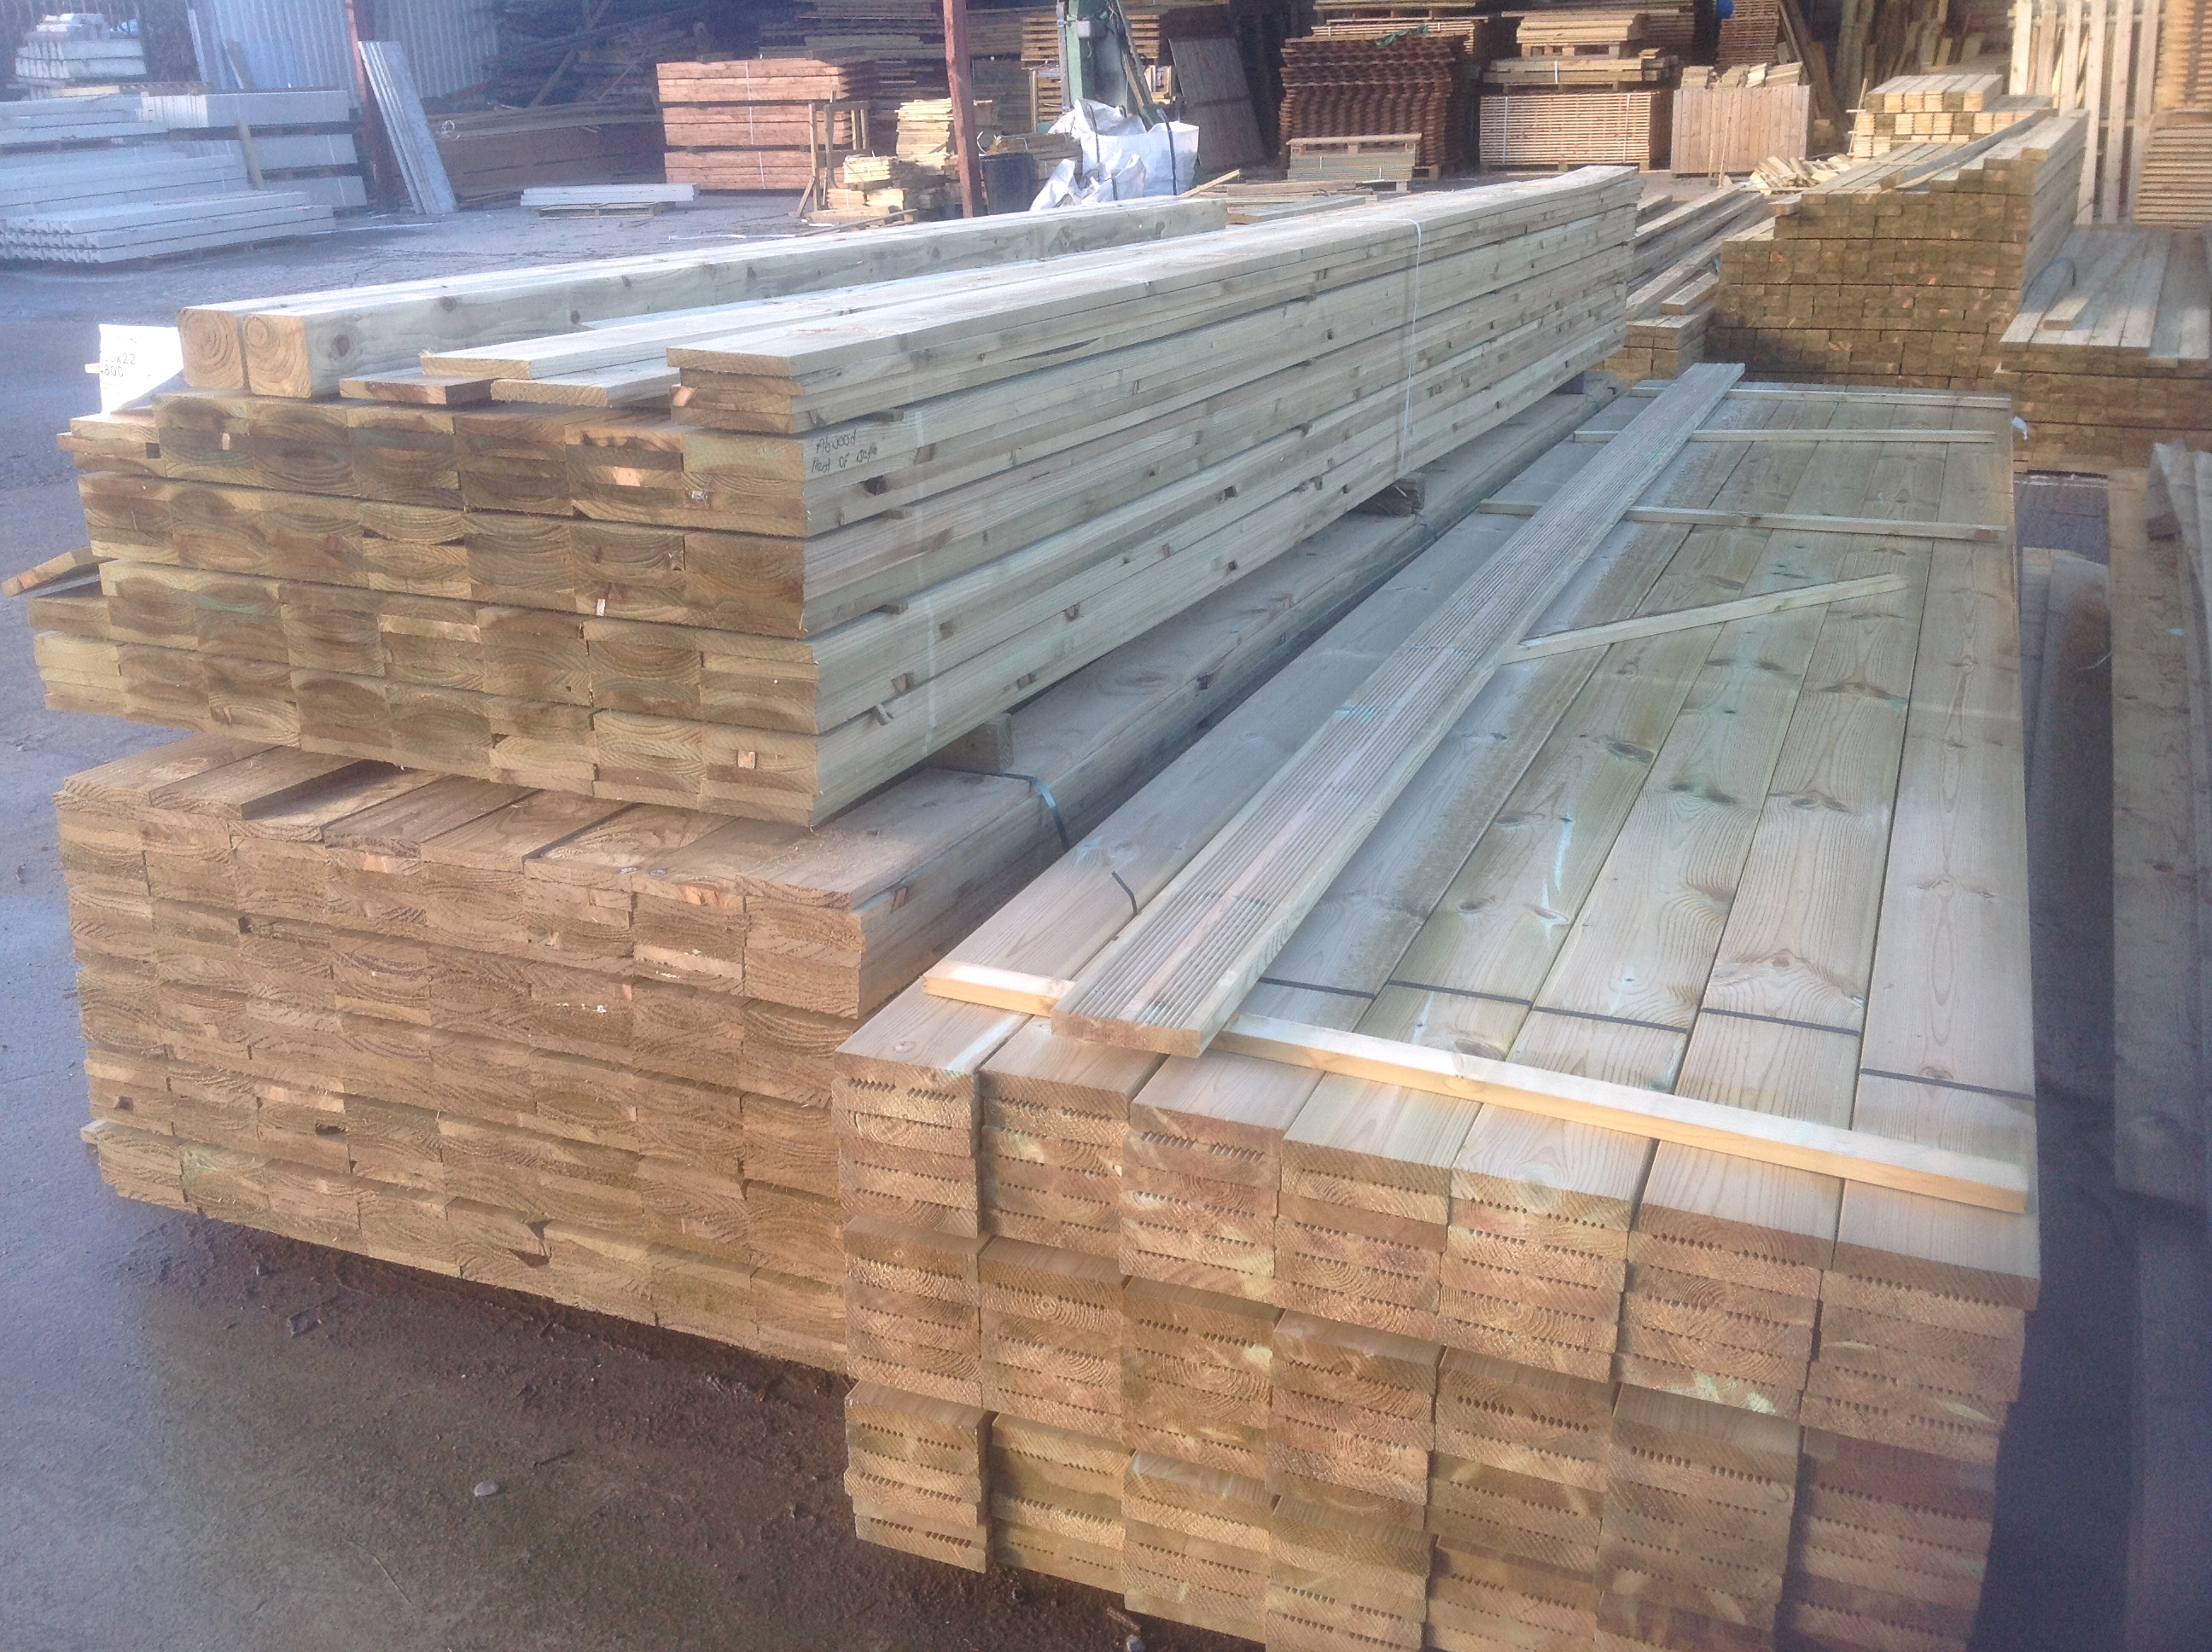 Wholesale Retail Timber | Buy Bulk Timber from Abwood Homes